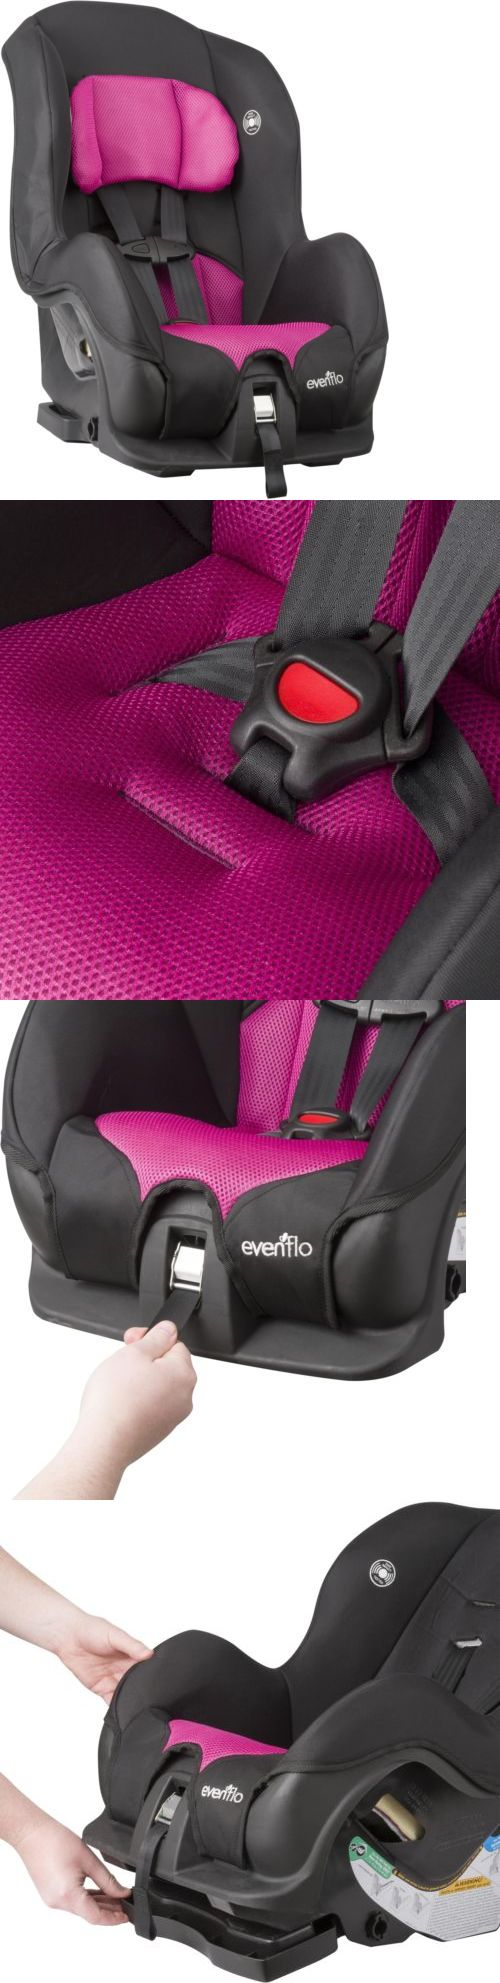 Evenflo Tribute Lx Convertible Car Seat Abigail Christmas Gift Shop